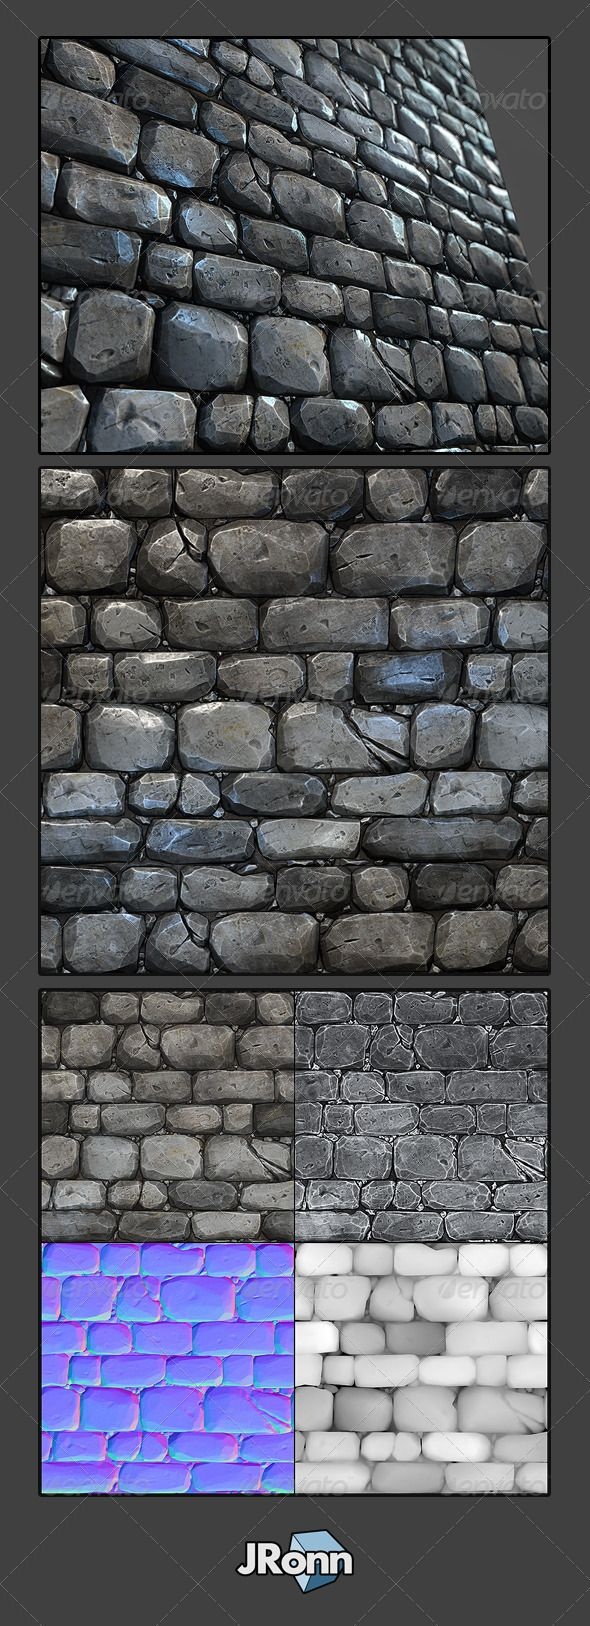 Unfinished brick wall texture for creating environment texture maps - Lighting And Texture 1 Stone Wall Tile 03 3docean Item For Sale